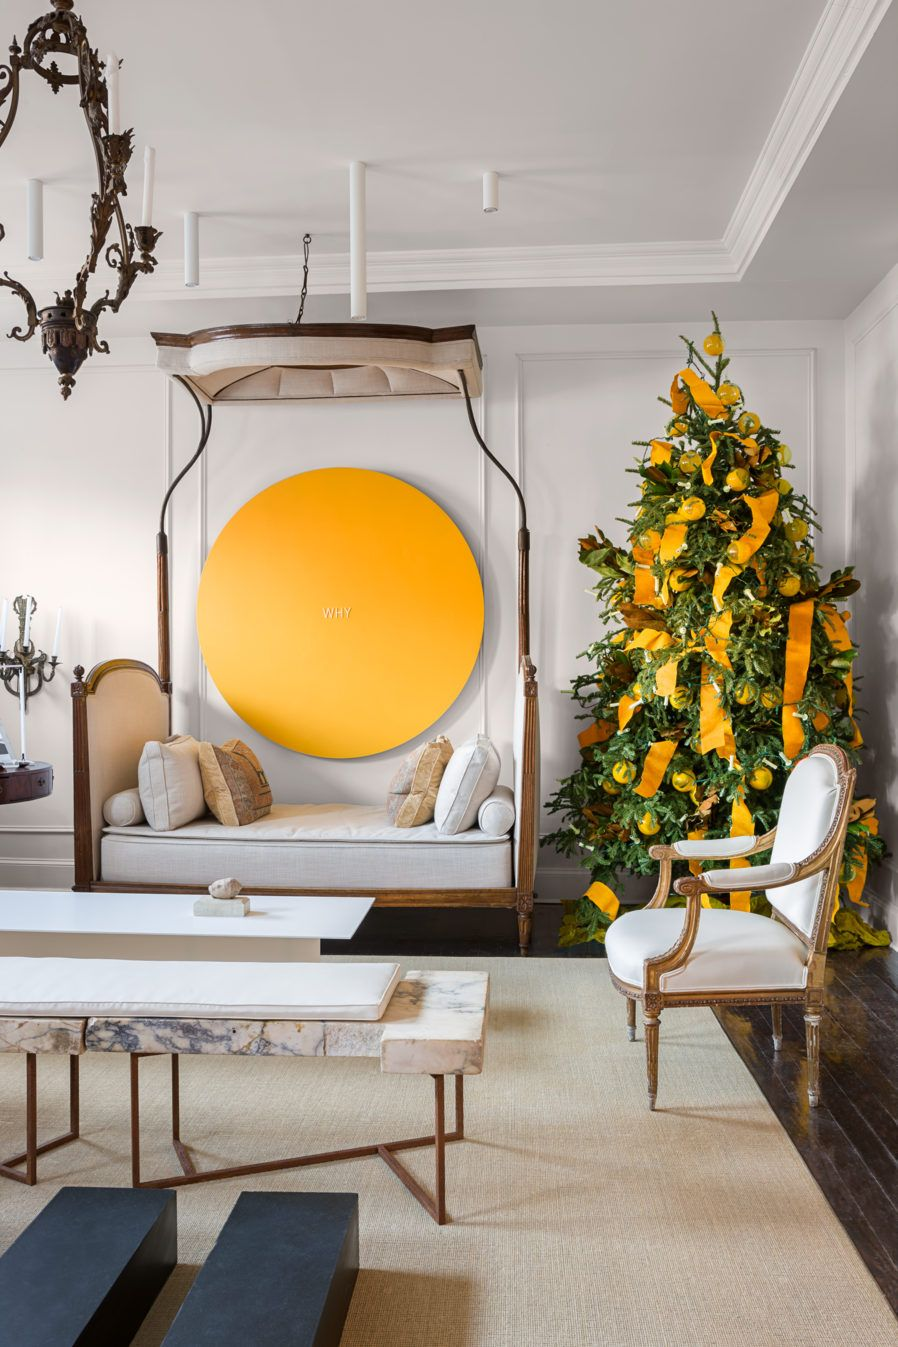 55 Of Our Best Holiday Decorating Ideas Throughout The Years Beautiful Christmas Decorations Decor Veranda Magazine